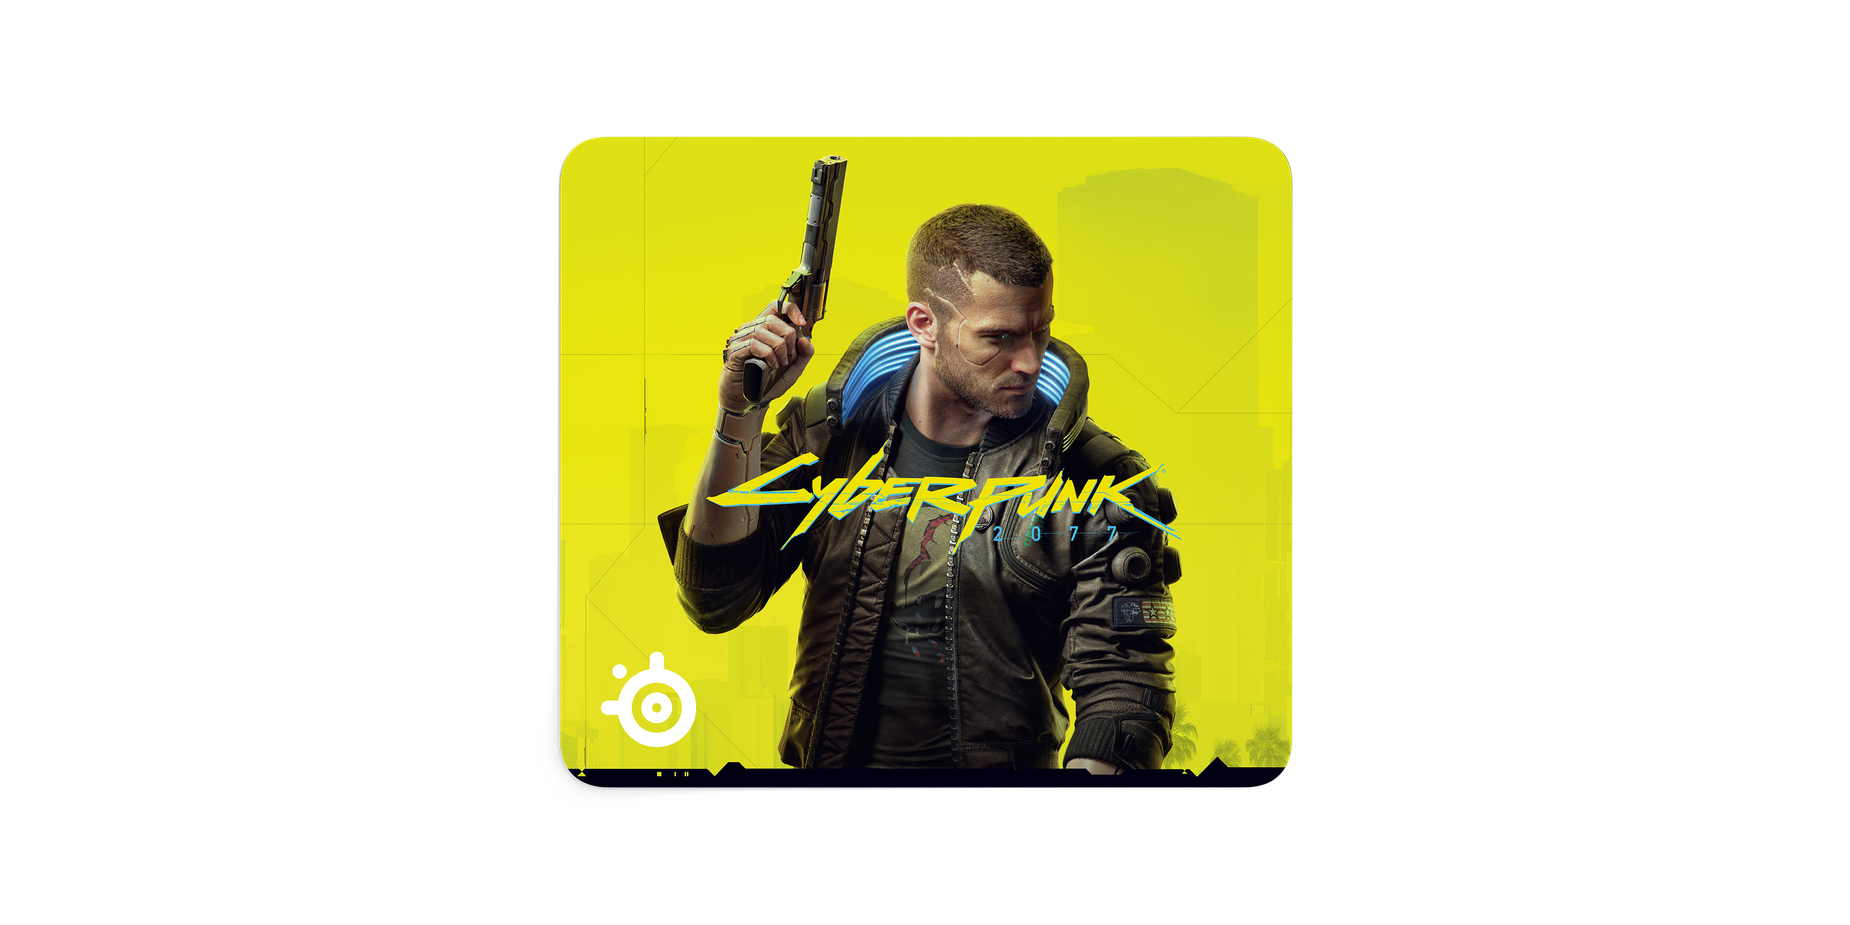 QcK Large mousepad covered completely in art from the game Cyberpunk 2077.